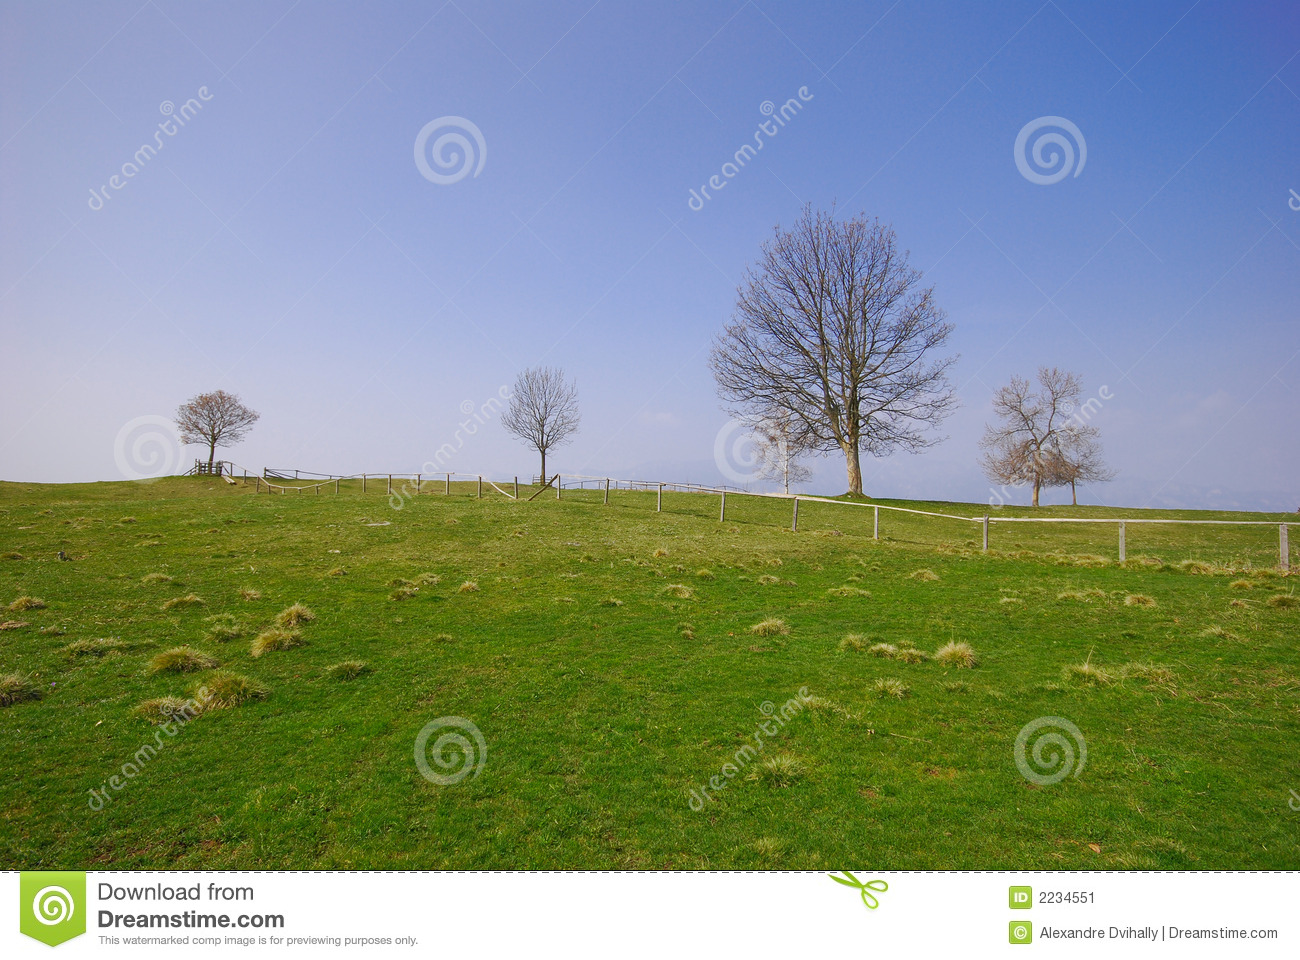 Green Grass And Tree Blue Sky Stock Image - Image: 2234551